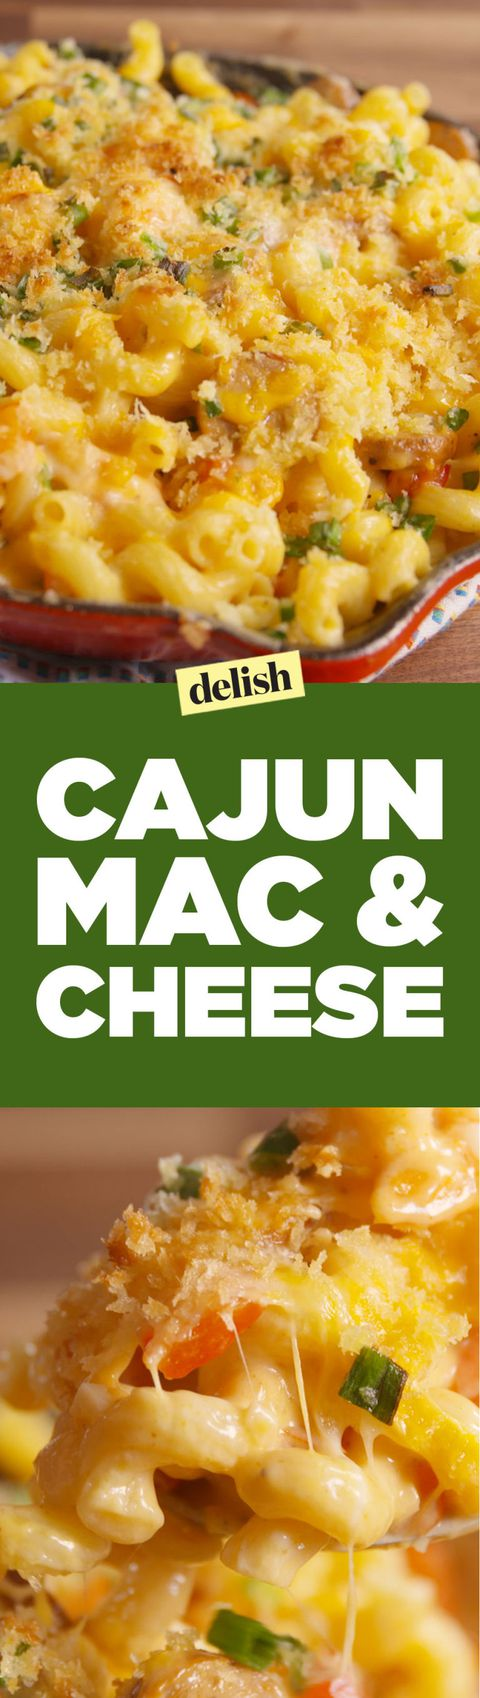 Cajun Mac & Cheese Pinterest